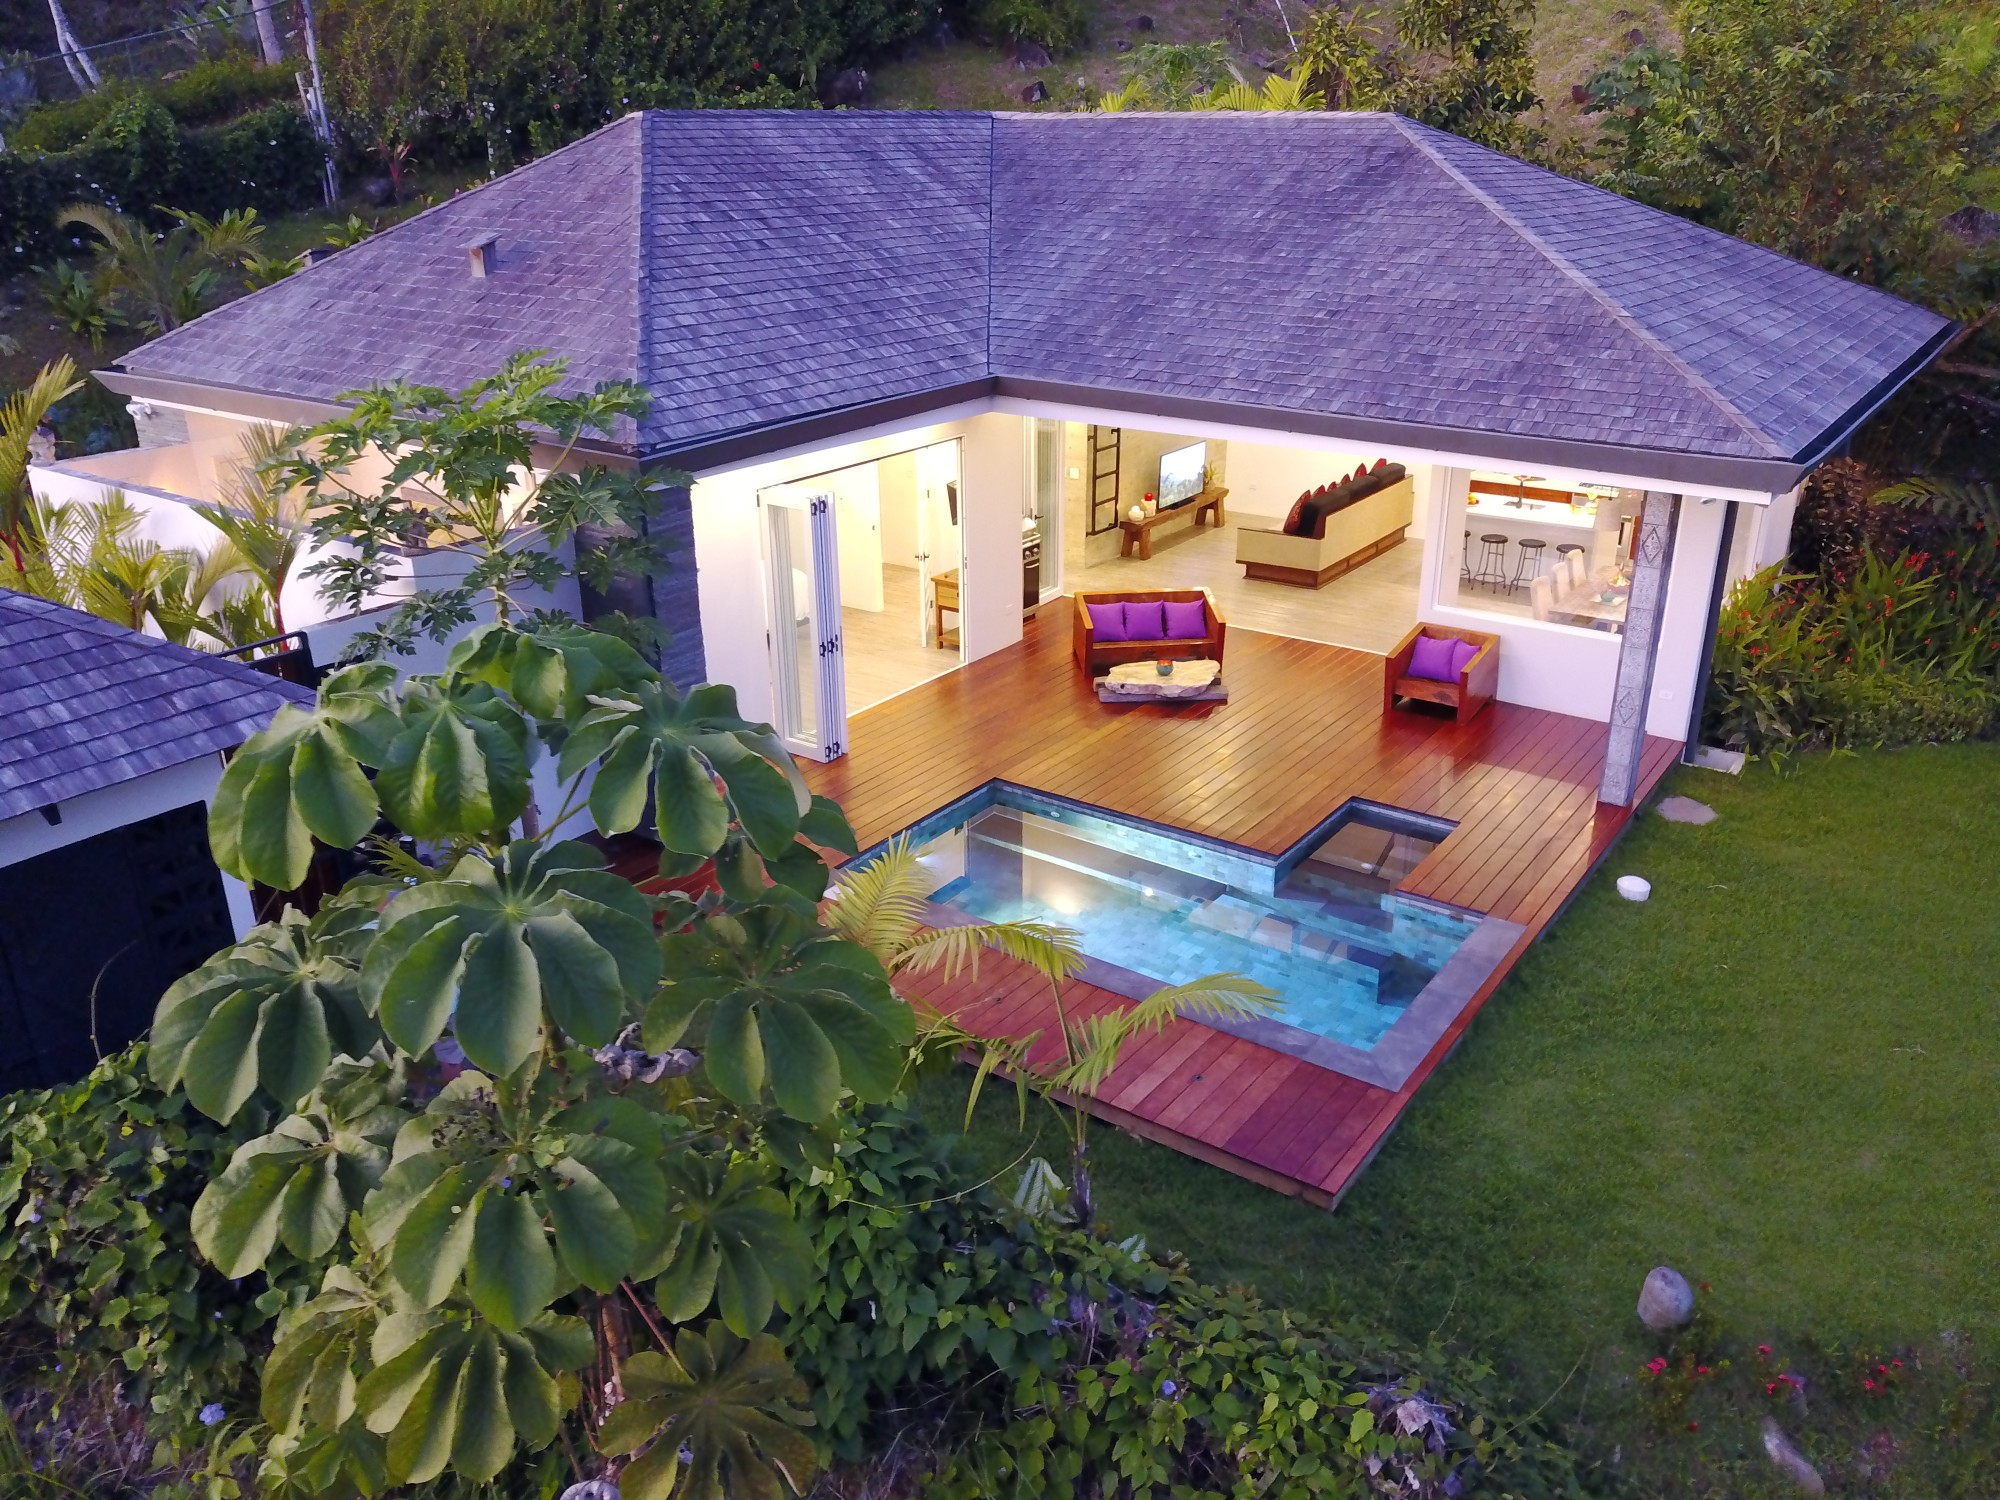 0.28 ACRES - 2 Bedroom Modern Bali Home With Pool And Ocean View!!